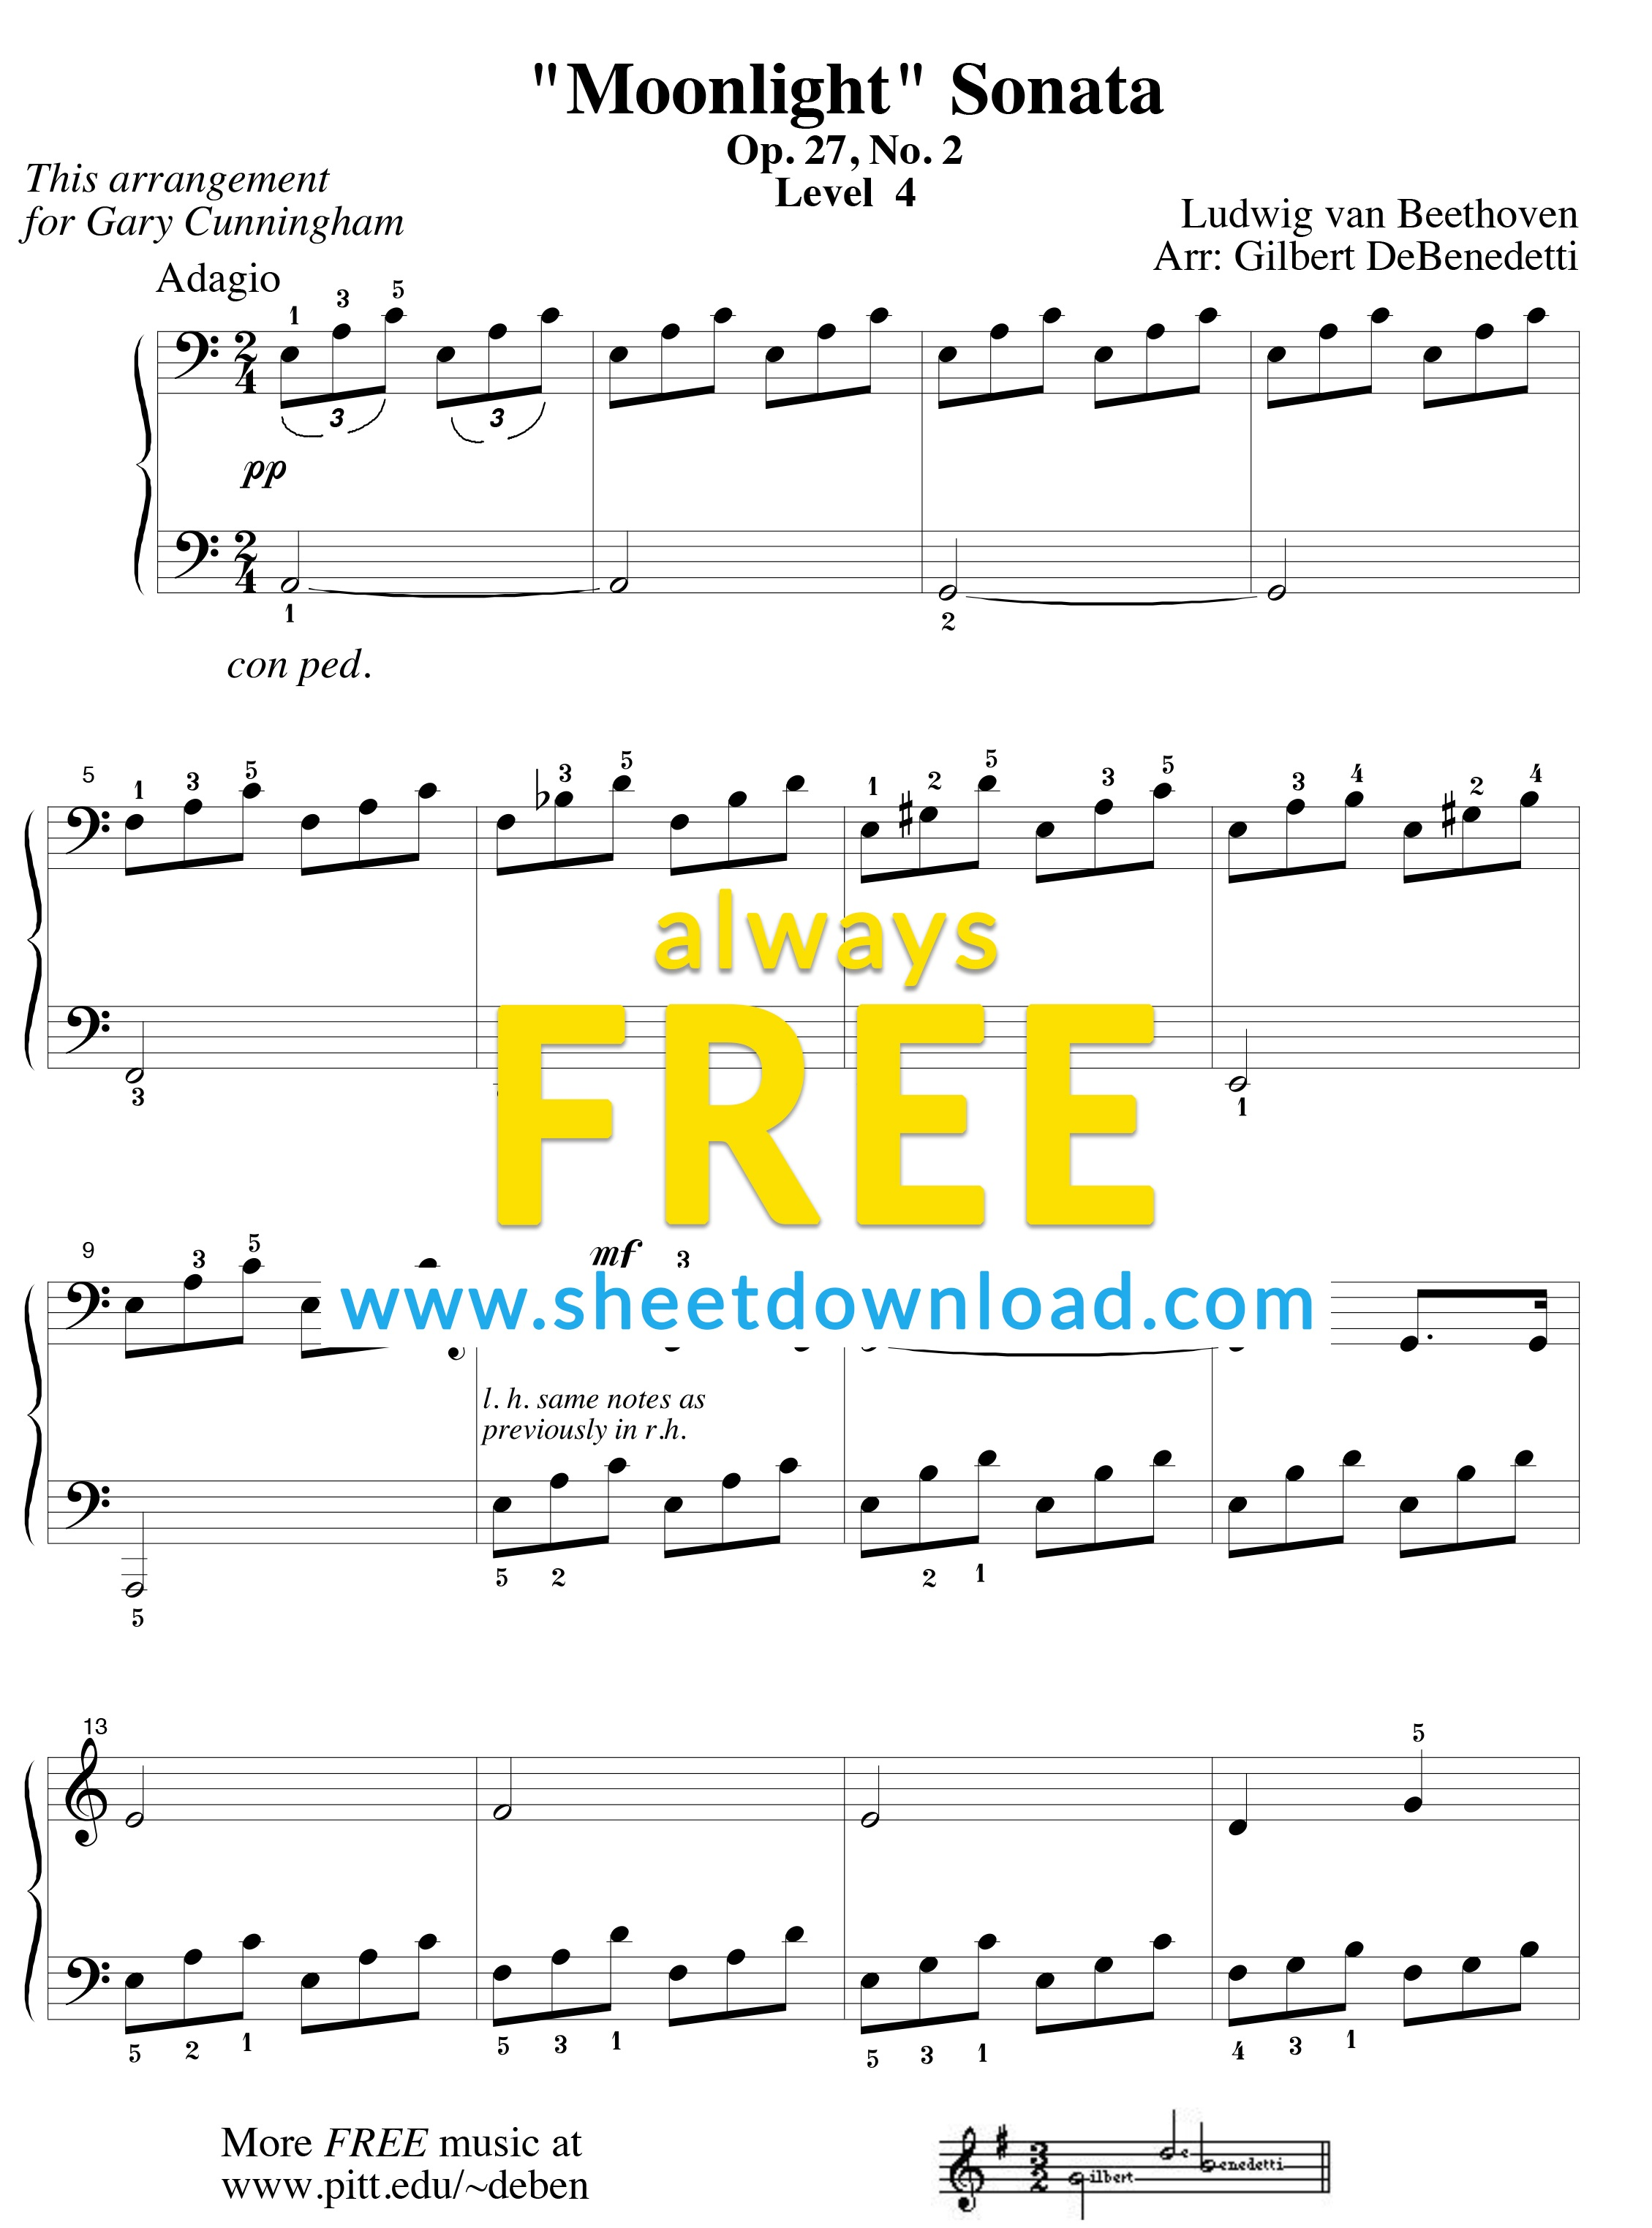 Top 100 Popular Piano Sheets Downloaded From Sheetdownload - Free Printable Piano Sheet Music For You Are My Sunshine